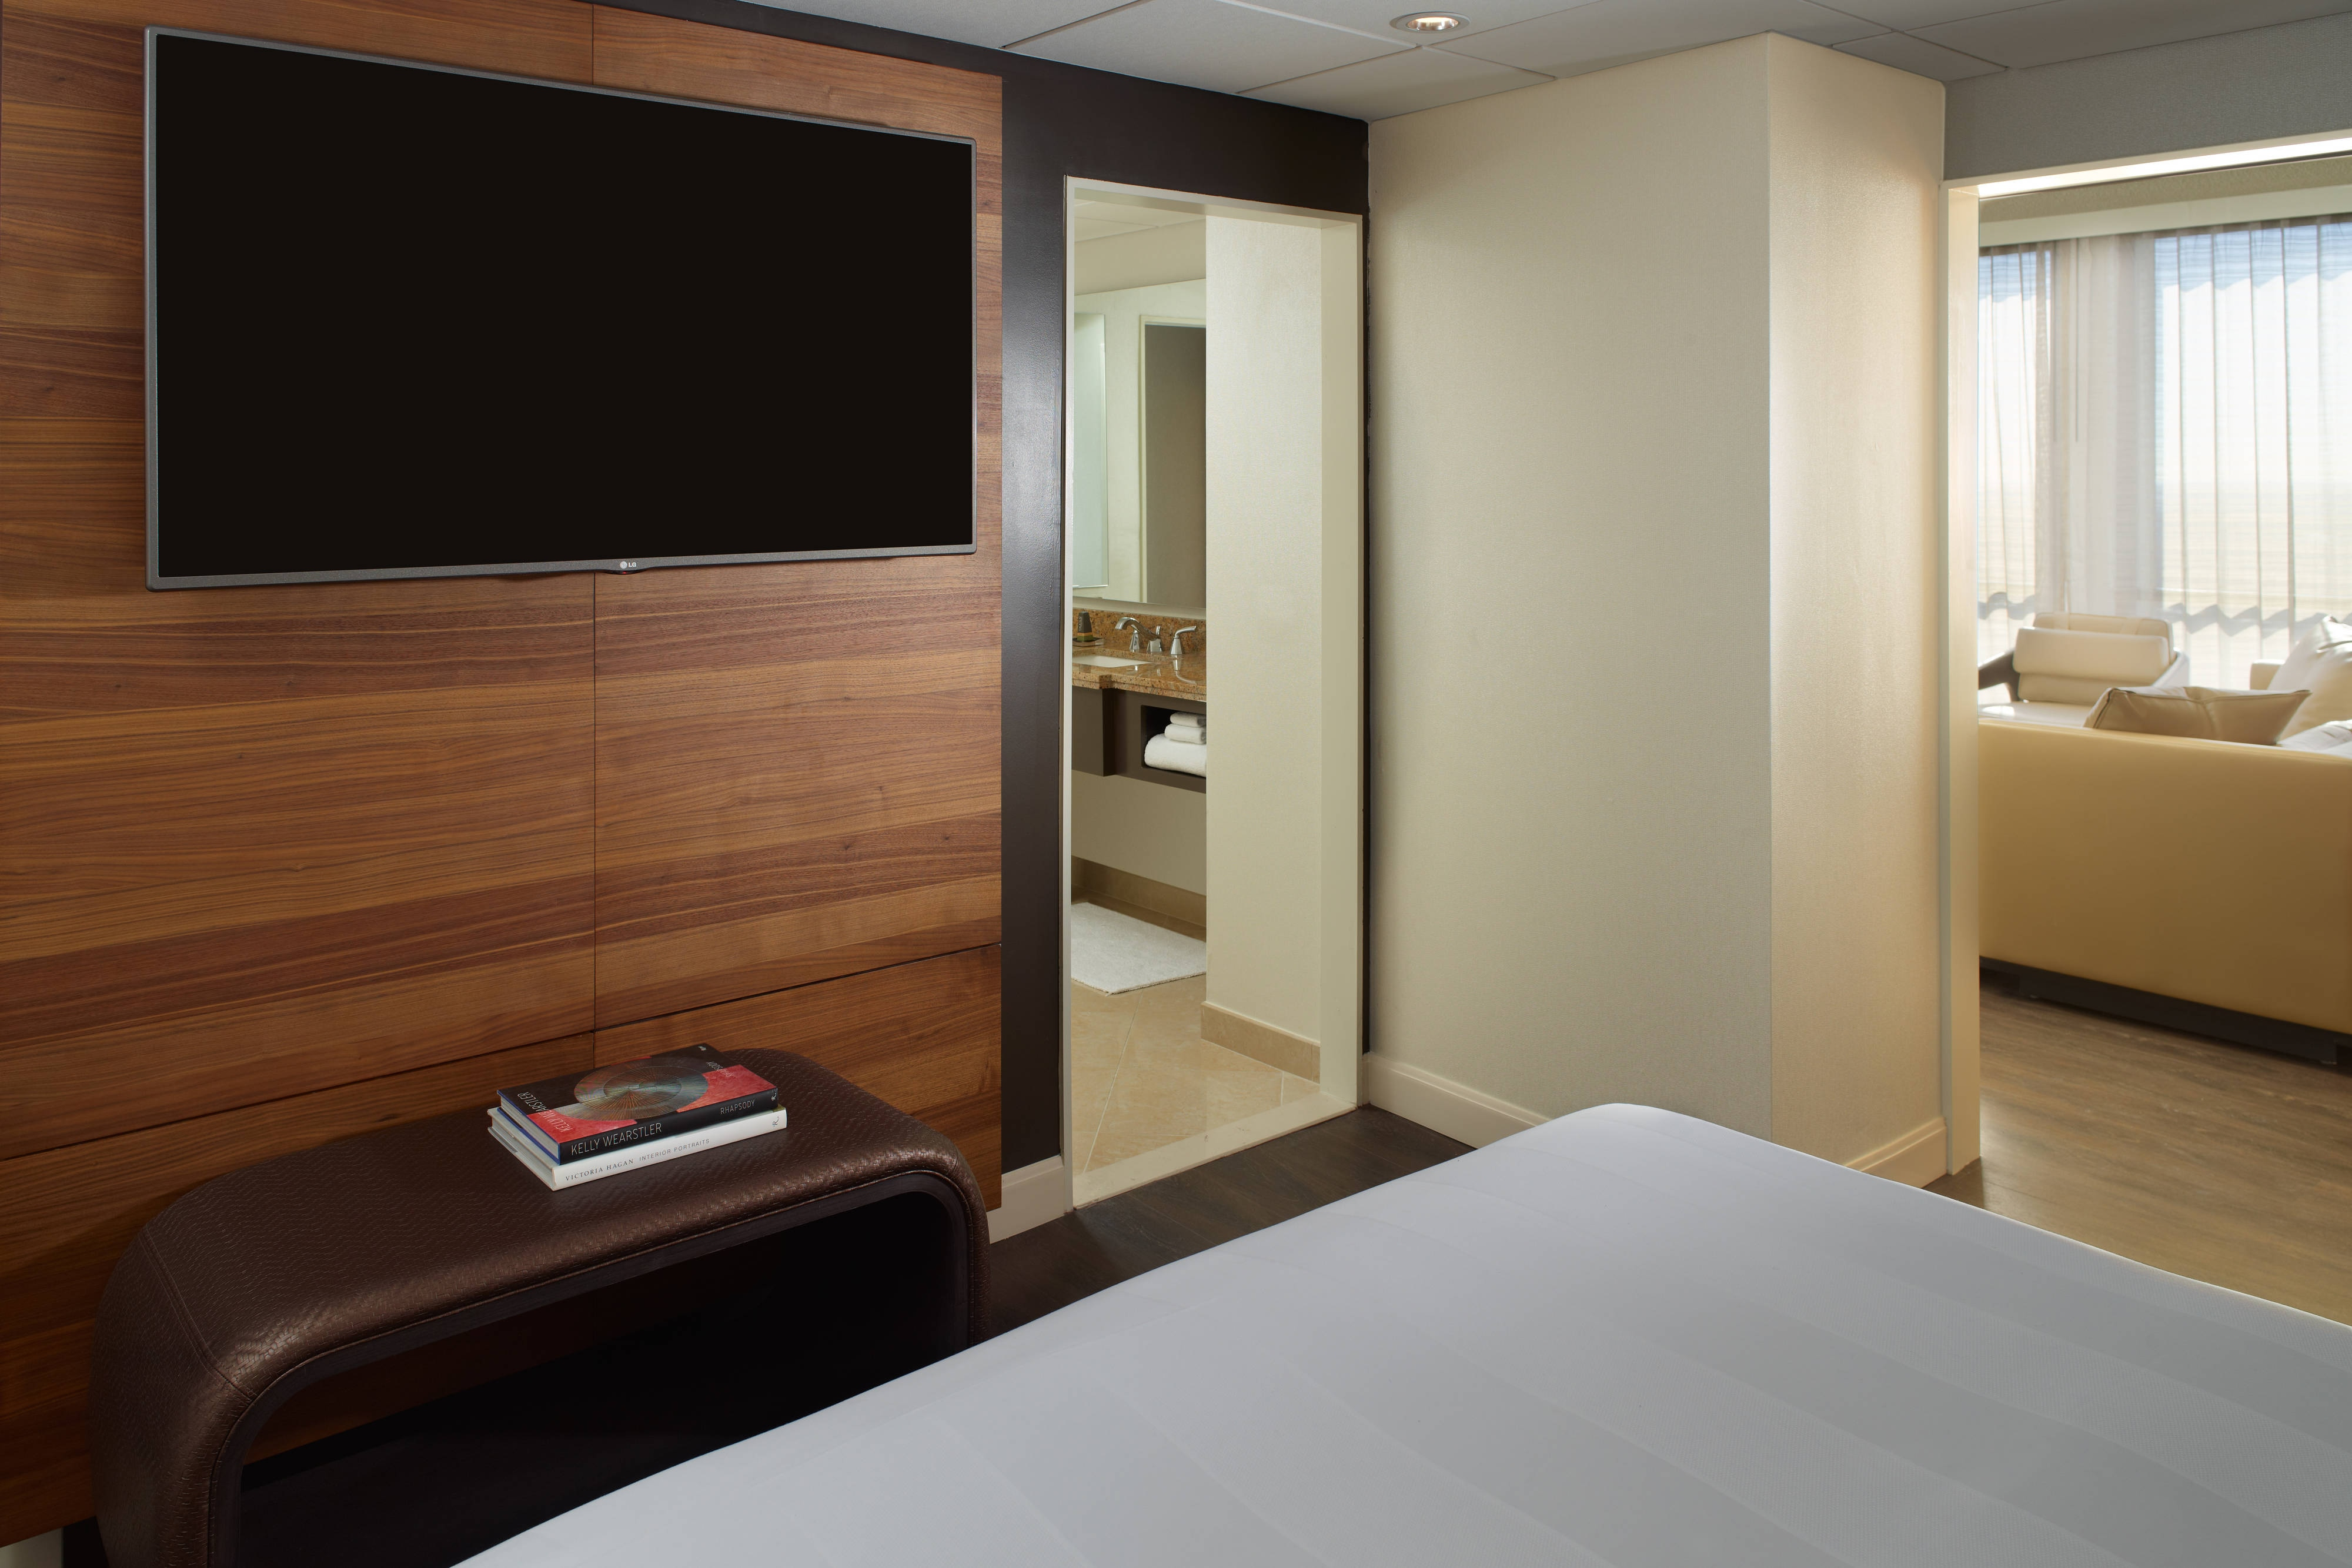 Executive Suite Sleeping Area with Television